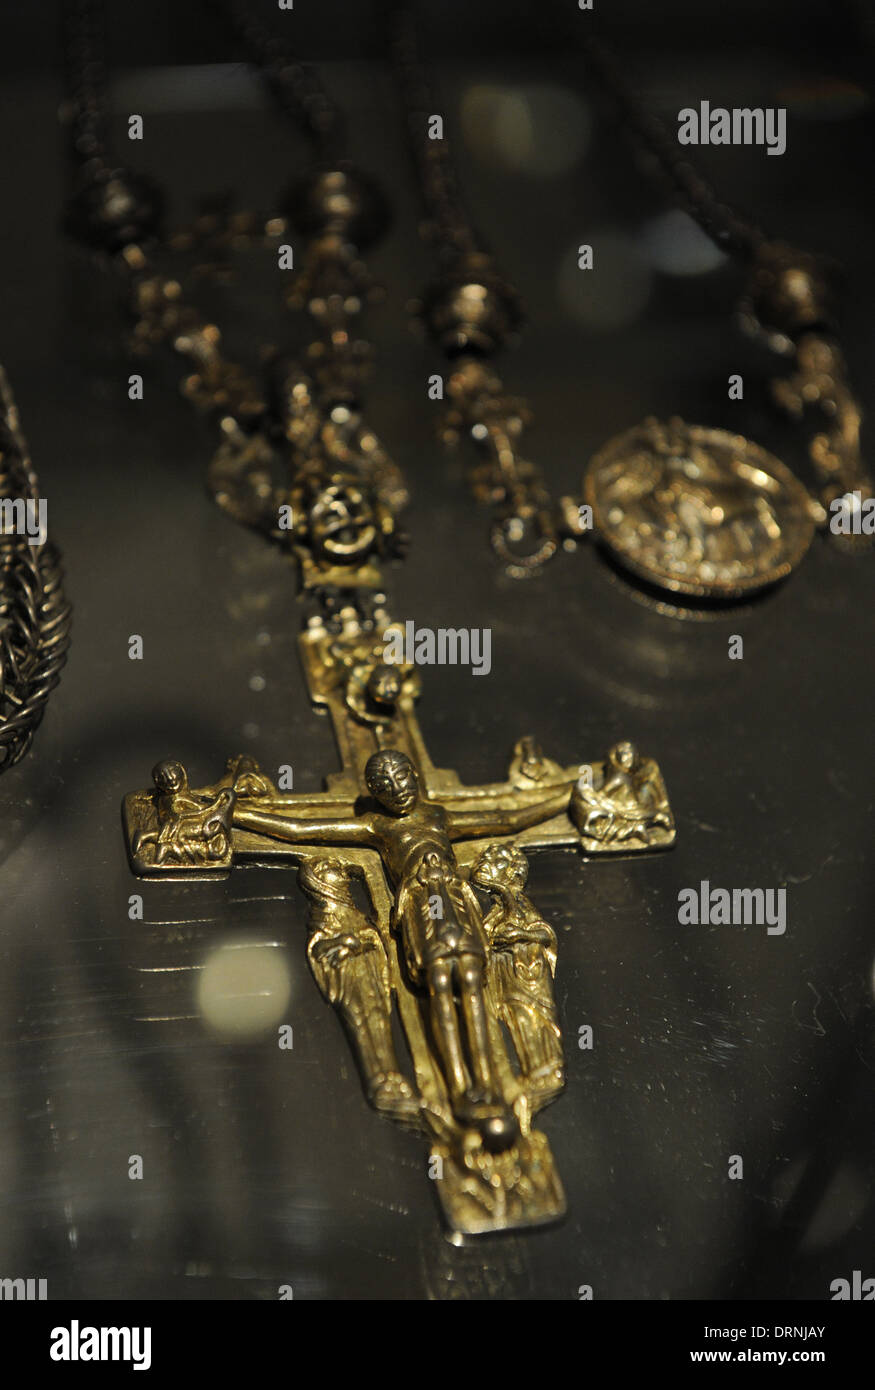 Bishop's Hoard from Halikko. 12th century. Pendant with a gilt crucifix. National Museum of Finland. Helsinki. Finland. - Stock Image